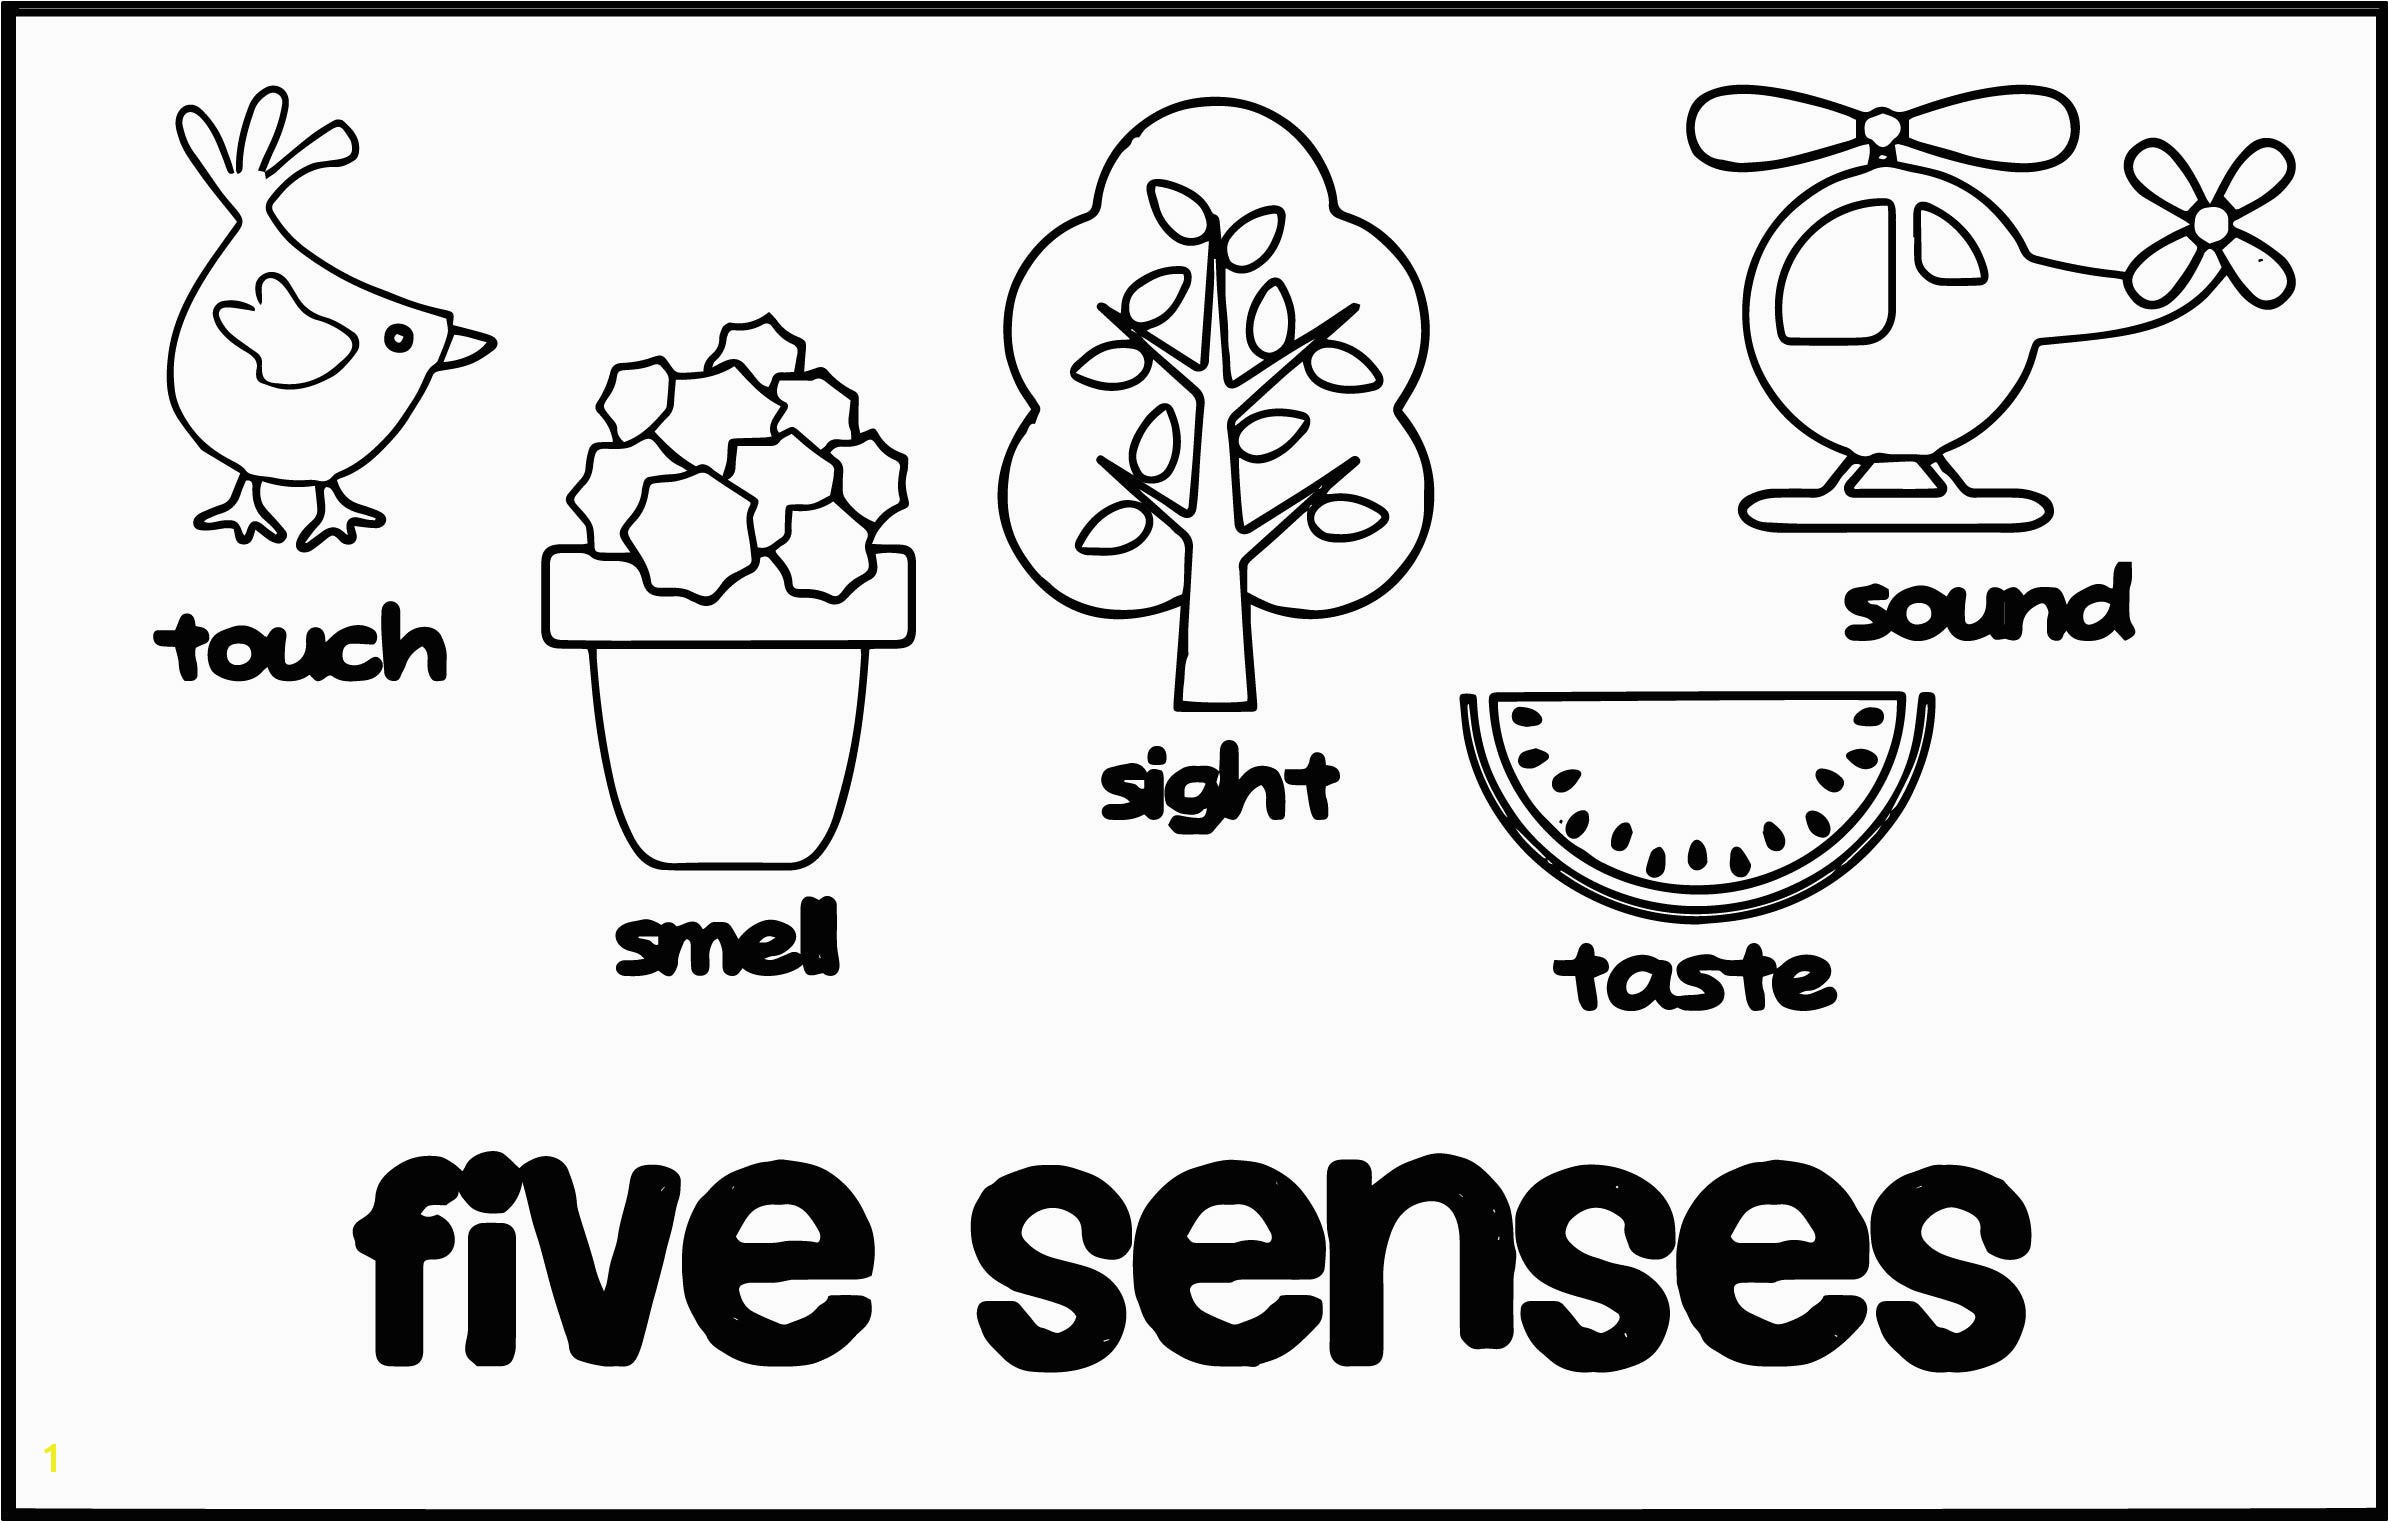 5 senses coloring sheet marvelous senses cute coloring page wecoloringpage image of inspiration and trend